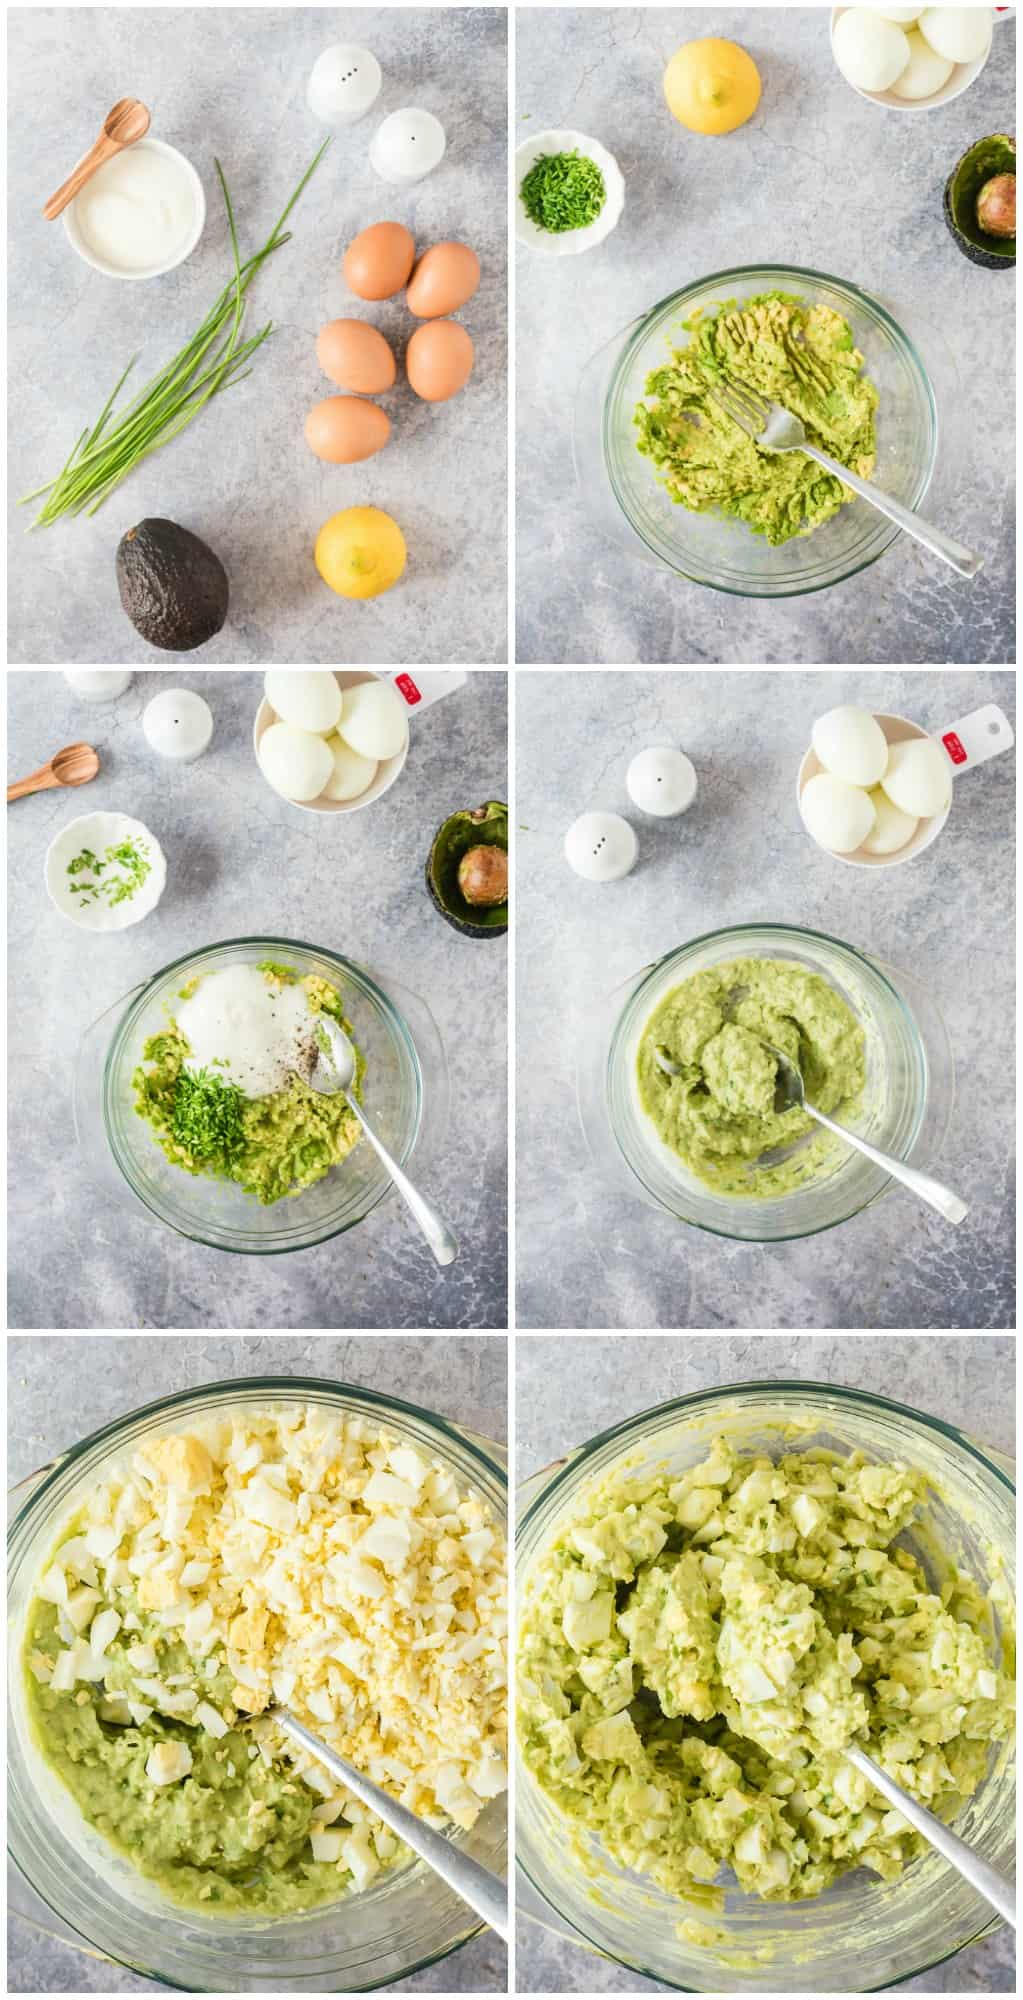 step by step photos of how to make avocado egg salad